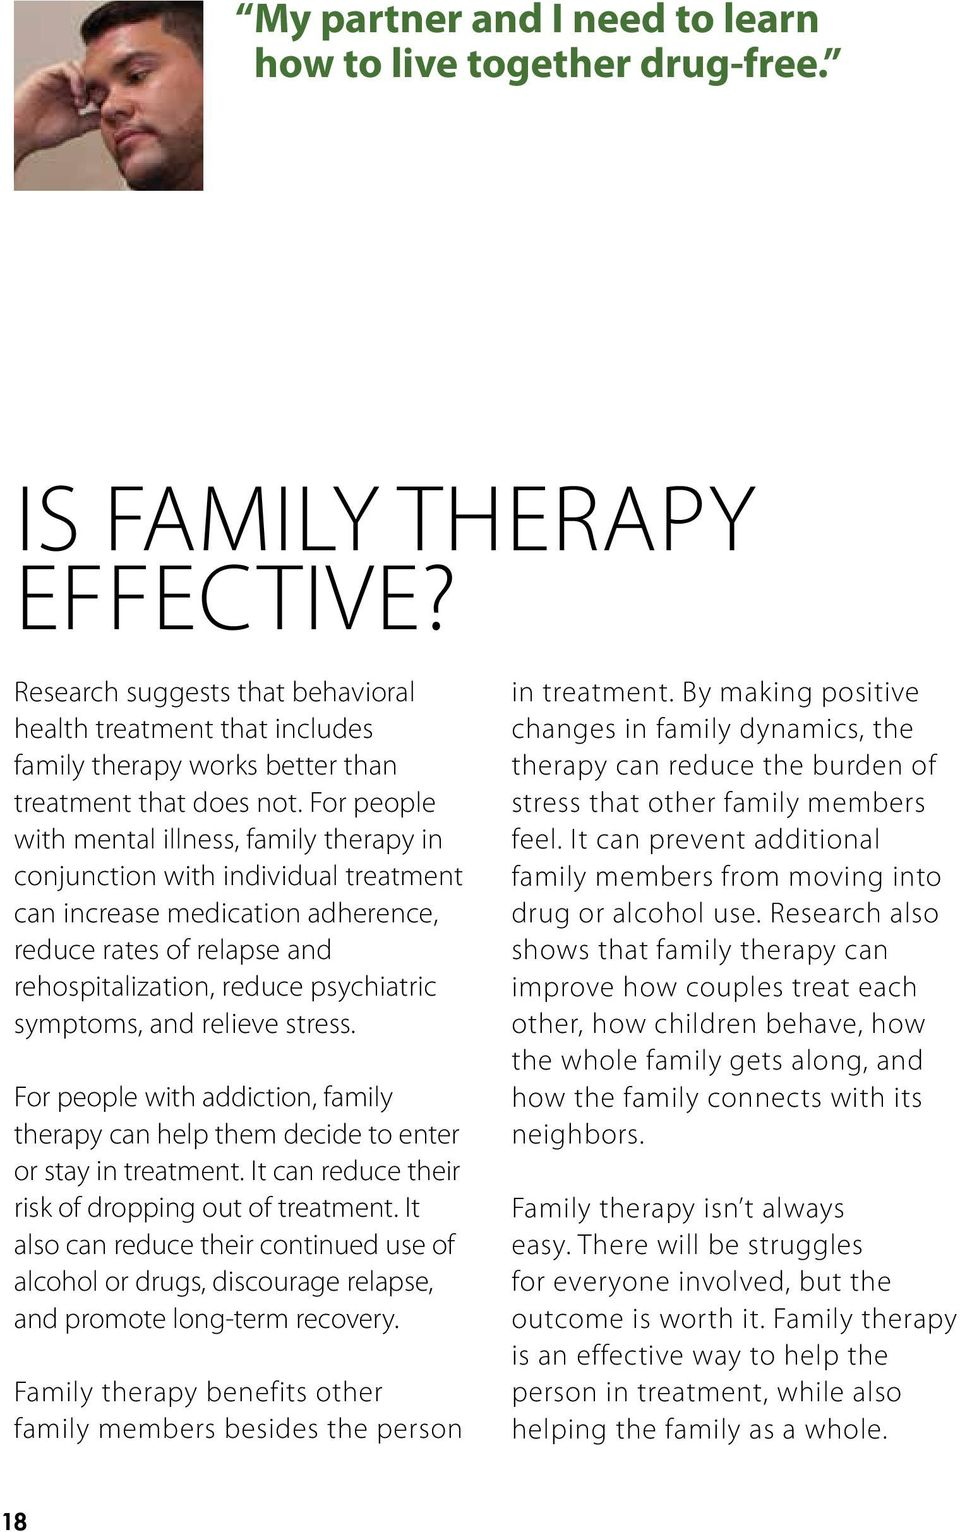 For people with mental illness, family therapy in conjunction with individual treatment can increase medication adherence, reduce rates of relapse and rehospitalization, reduce psychiatric symptoms,